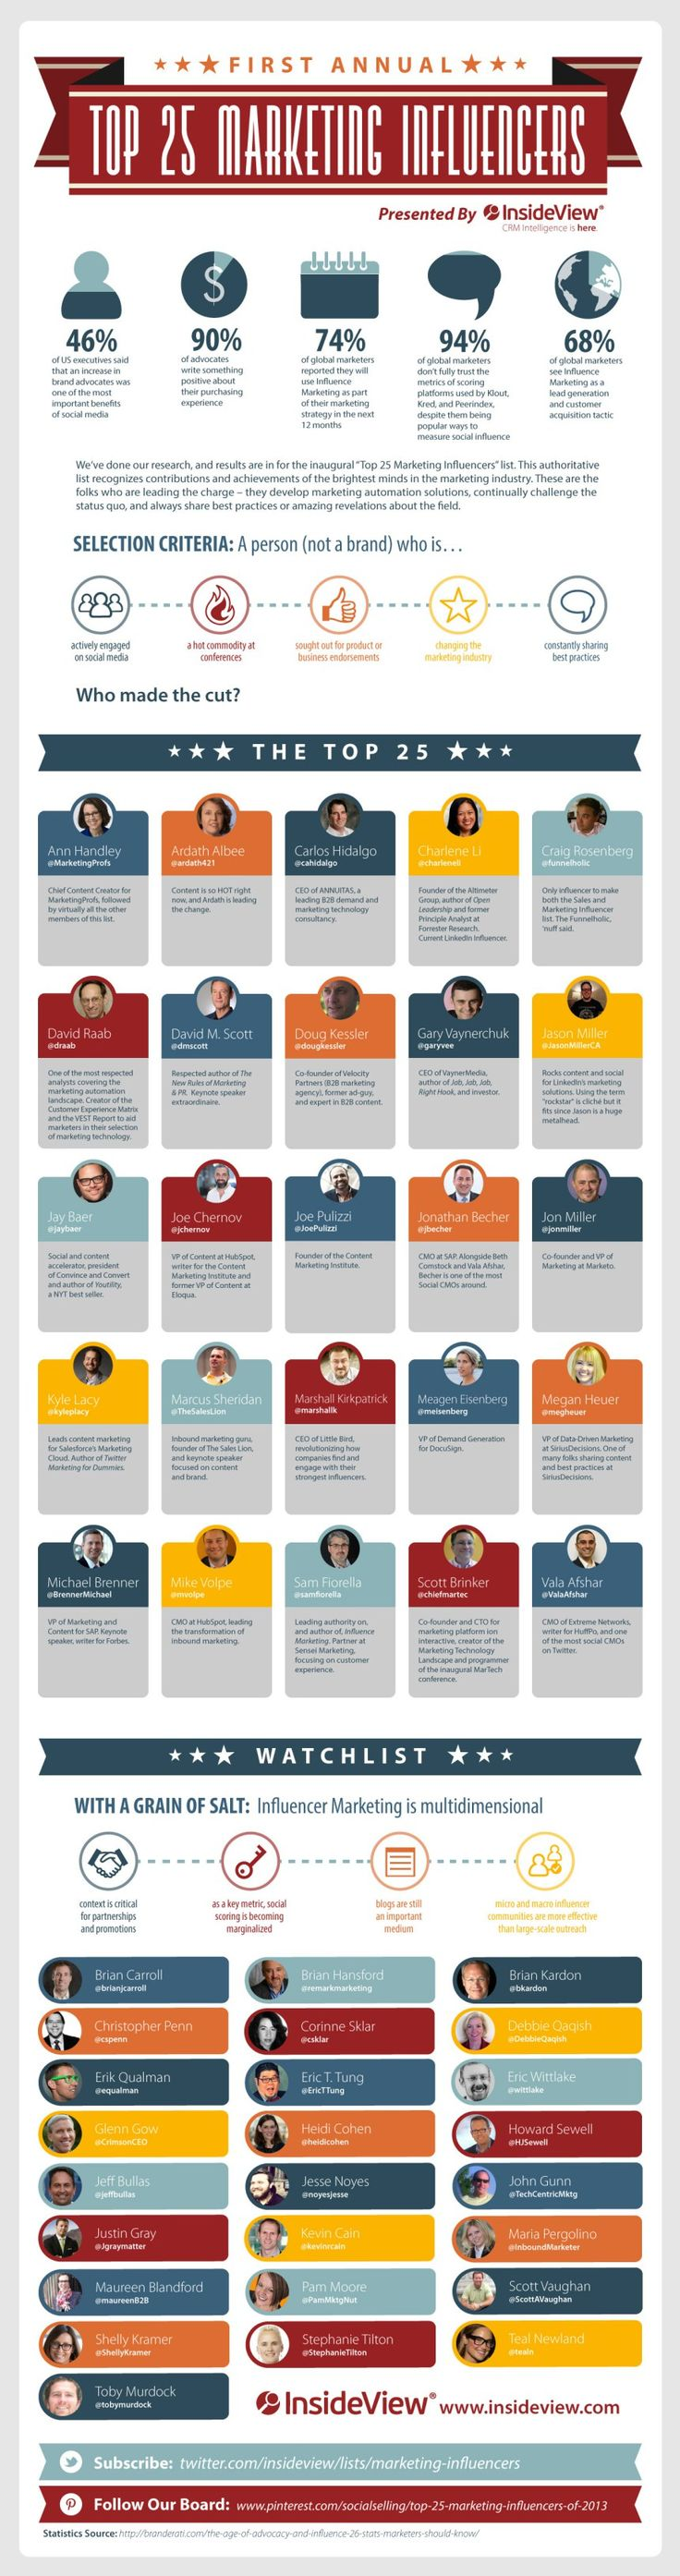 Top 25 marketing influencers